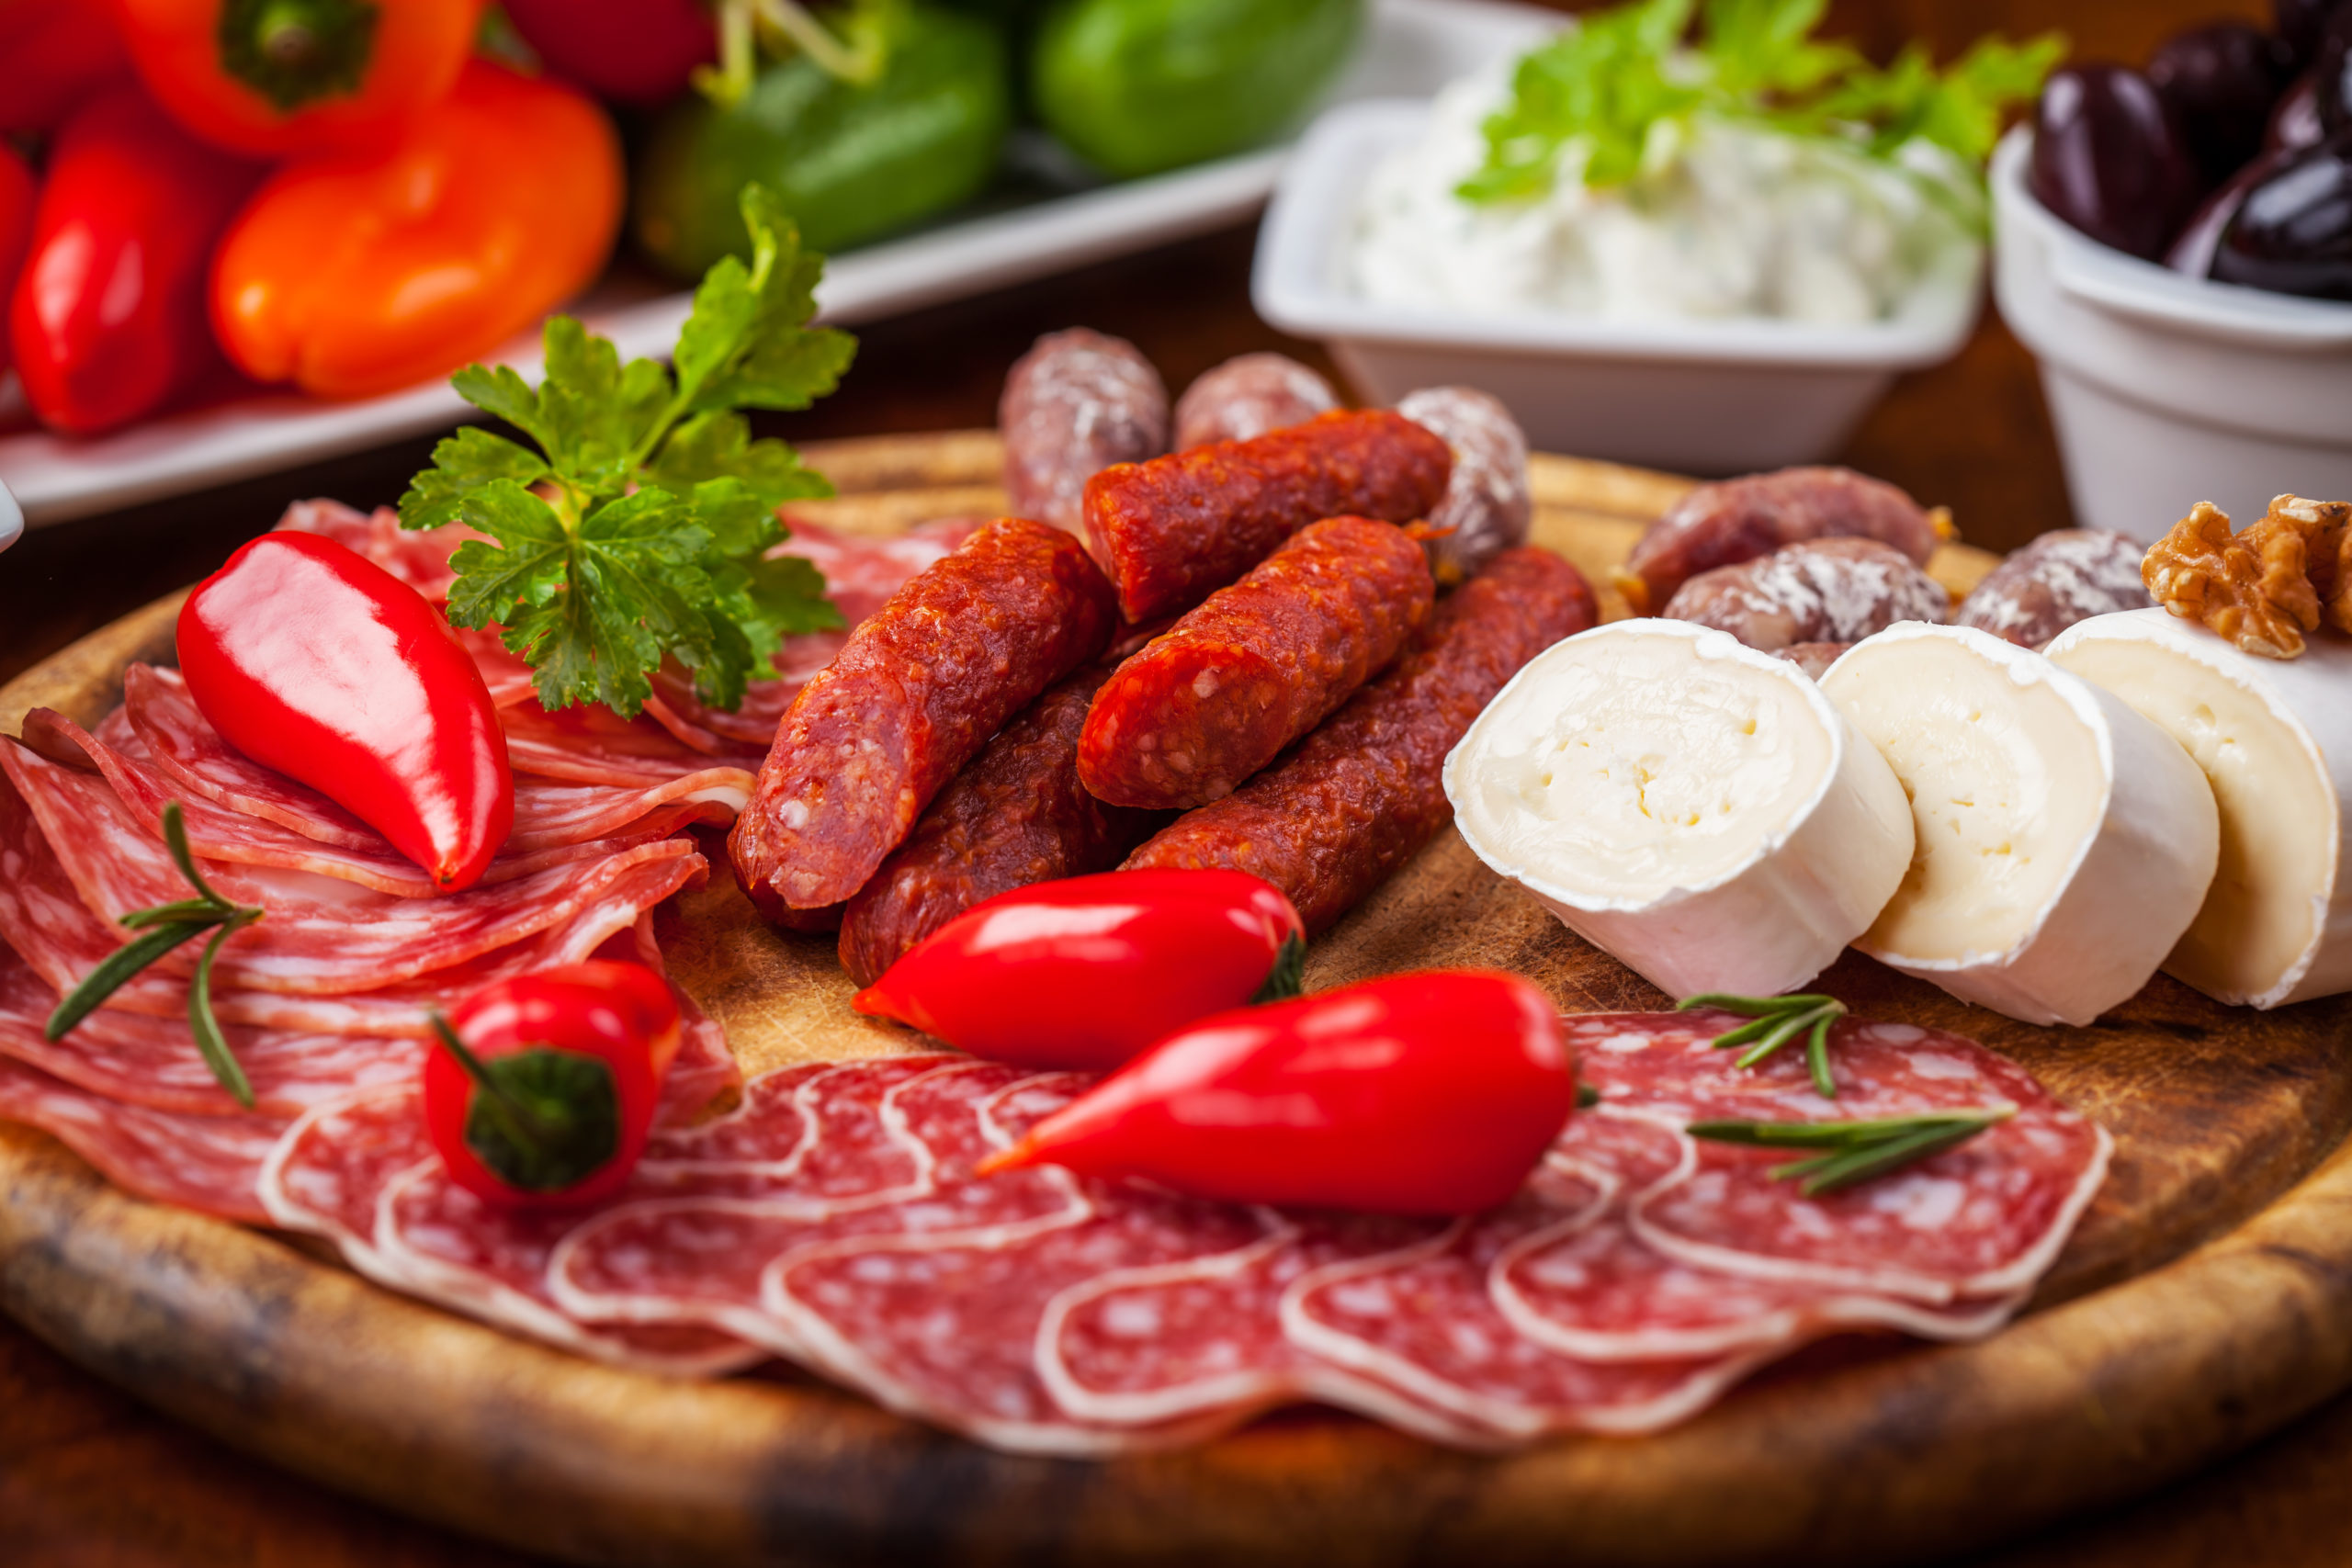 Pro-inflammatory diet increases risk for colorectal and breast cancer.